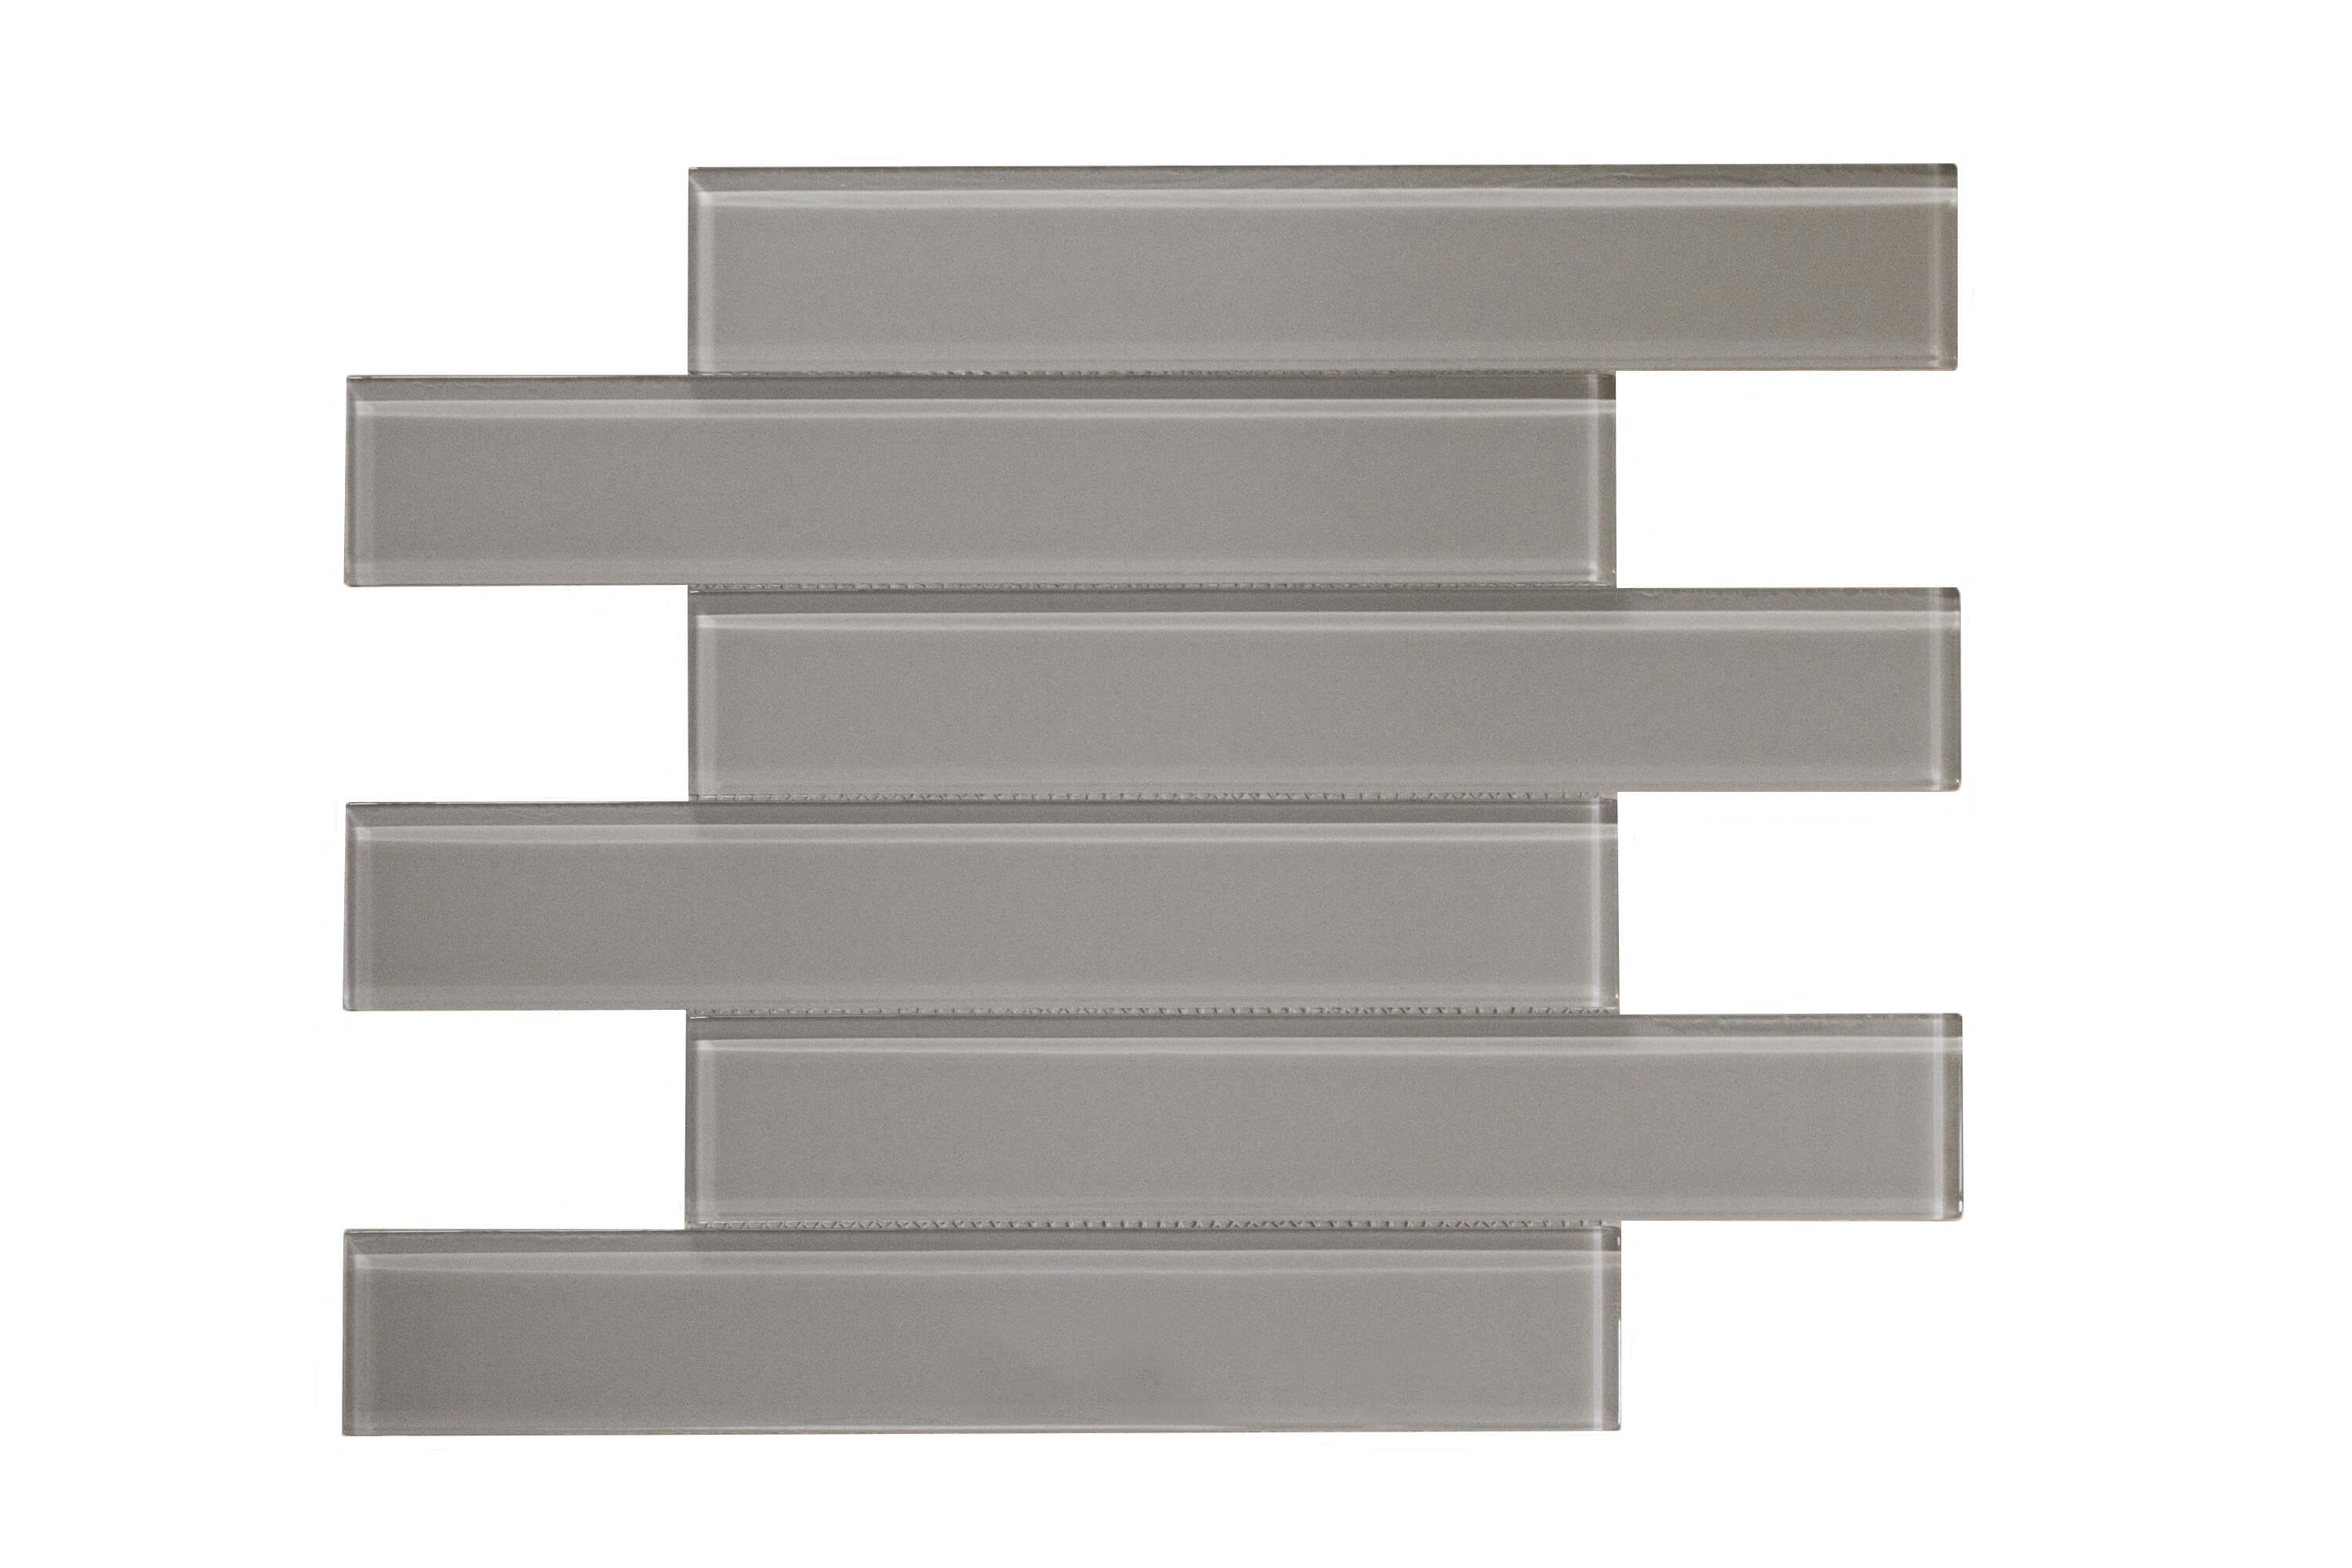 Malla Misiones Glass Brick 1 Grey 6V6112 30 X 30